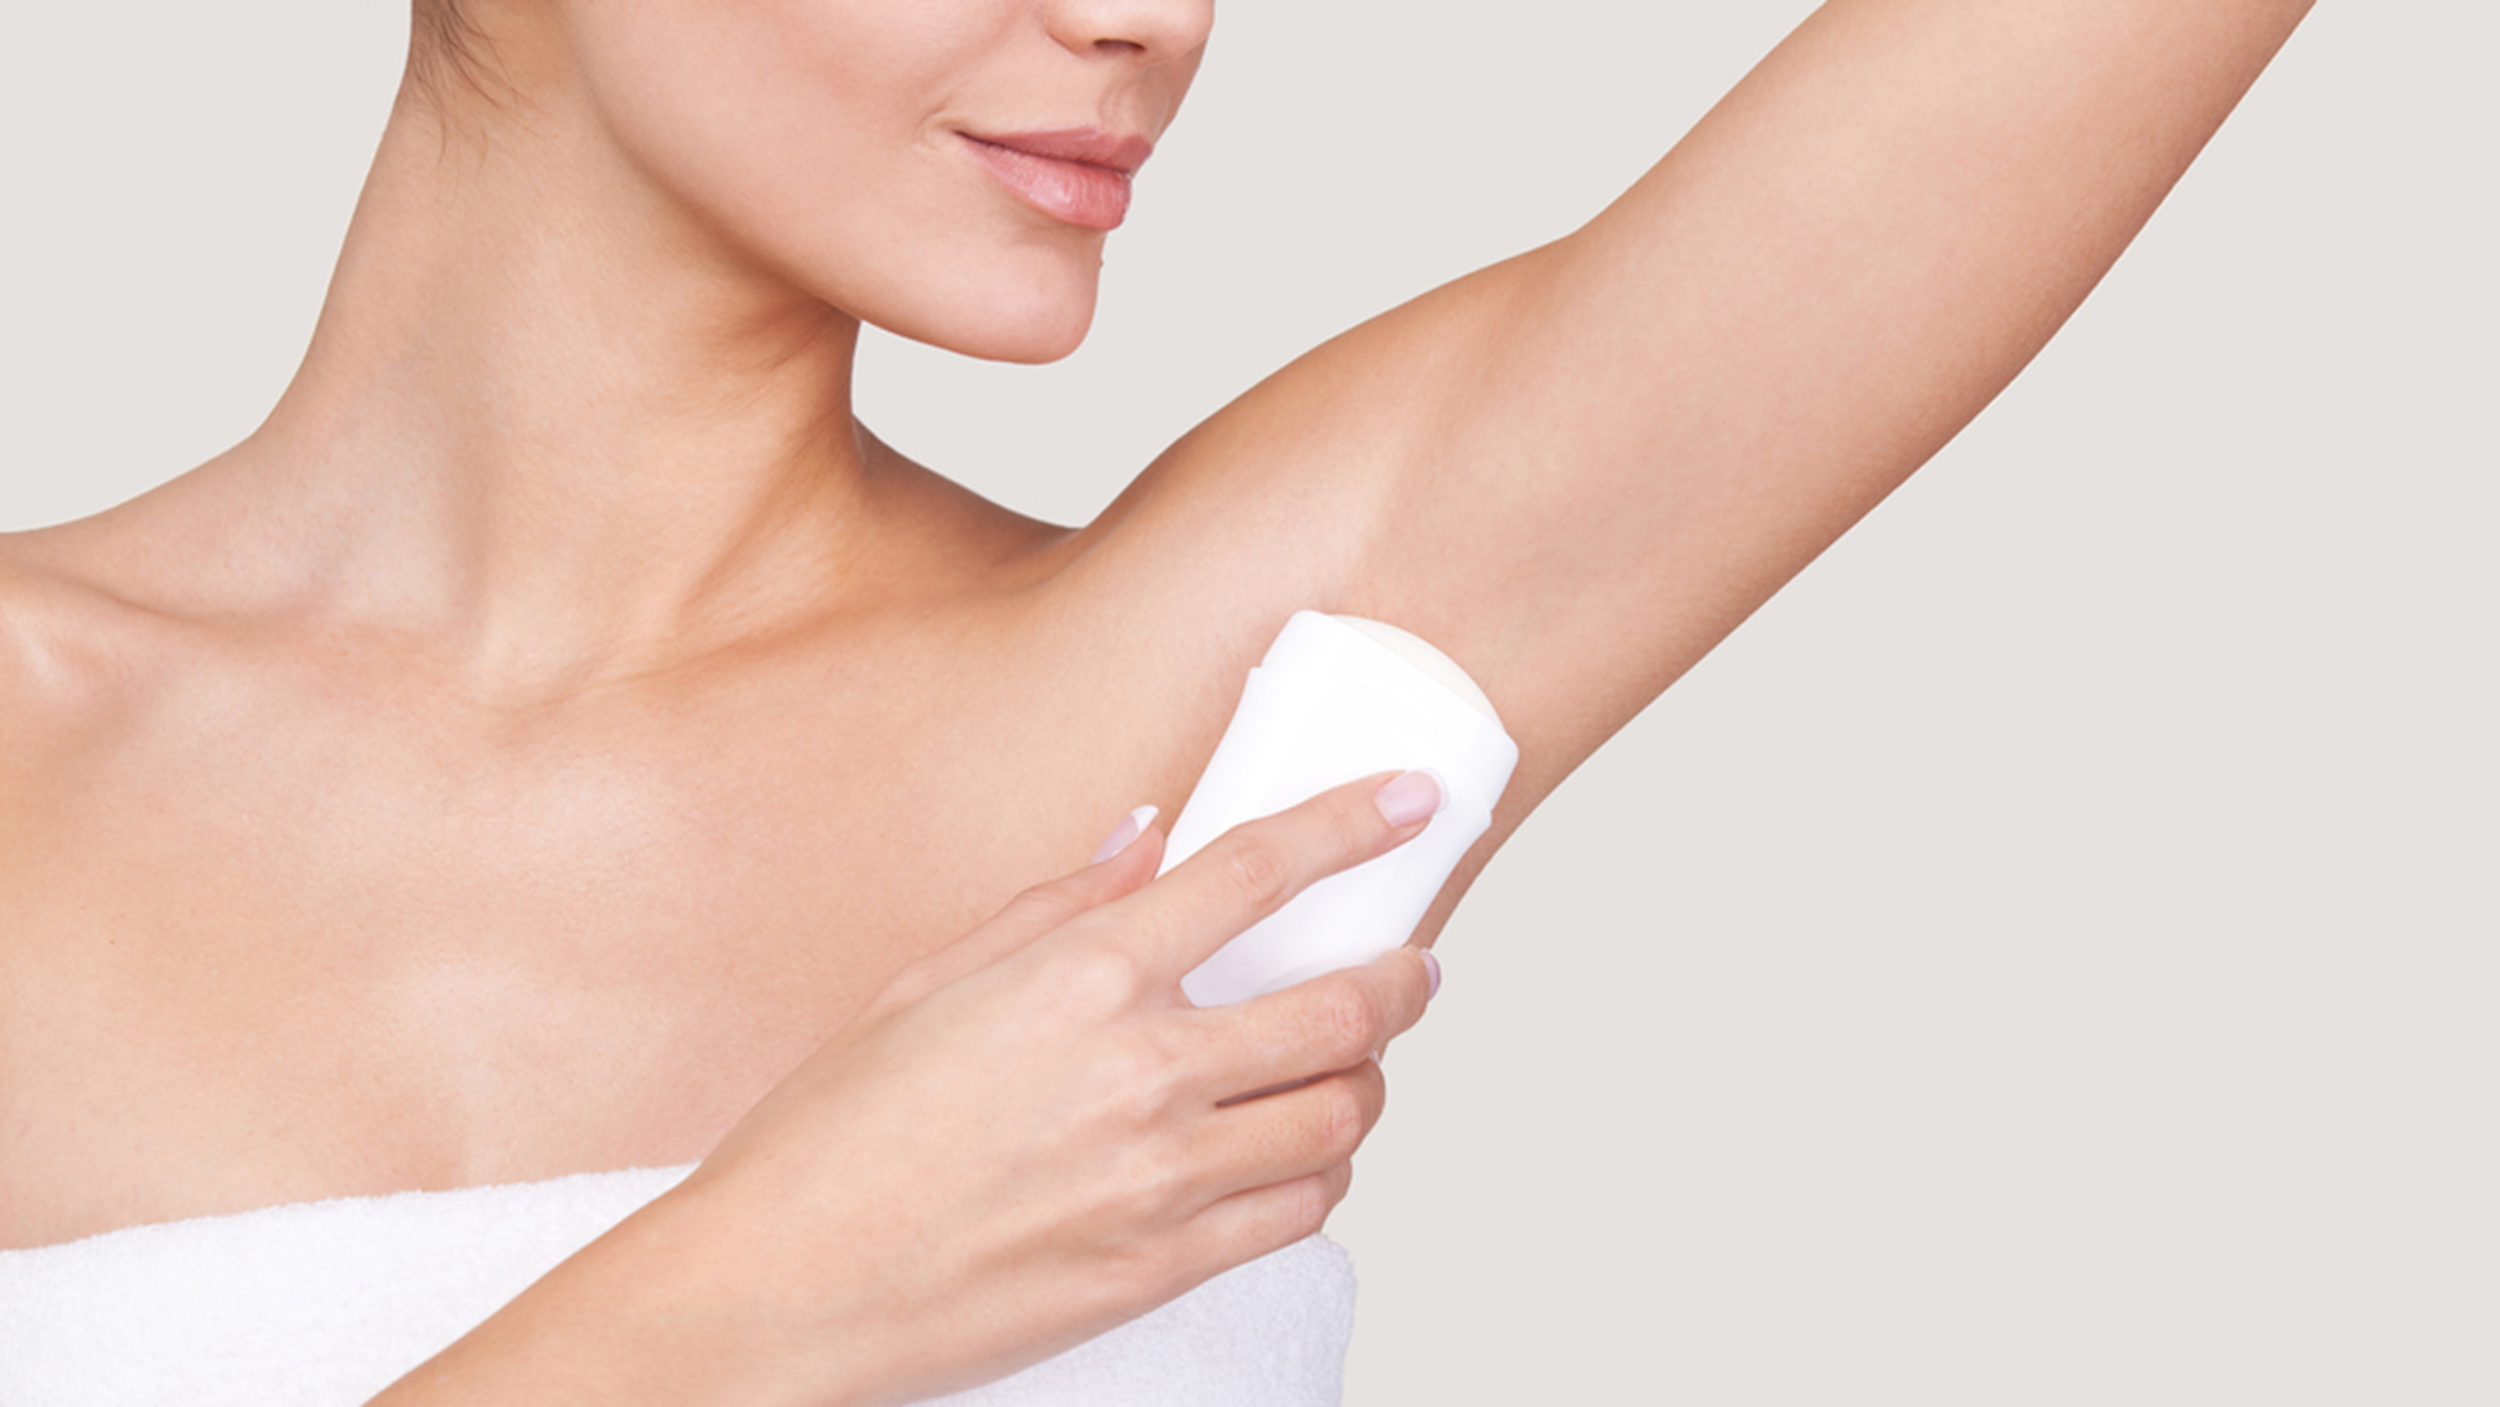 Staying fresh. Cropped image of beautiful young woman wrapped in towel standing against grey background, using deodorant; Shutterstock ID 171246548; PO: natural-deodorant-today-tease-160210; Client: TODAY Digital